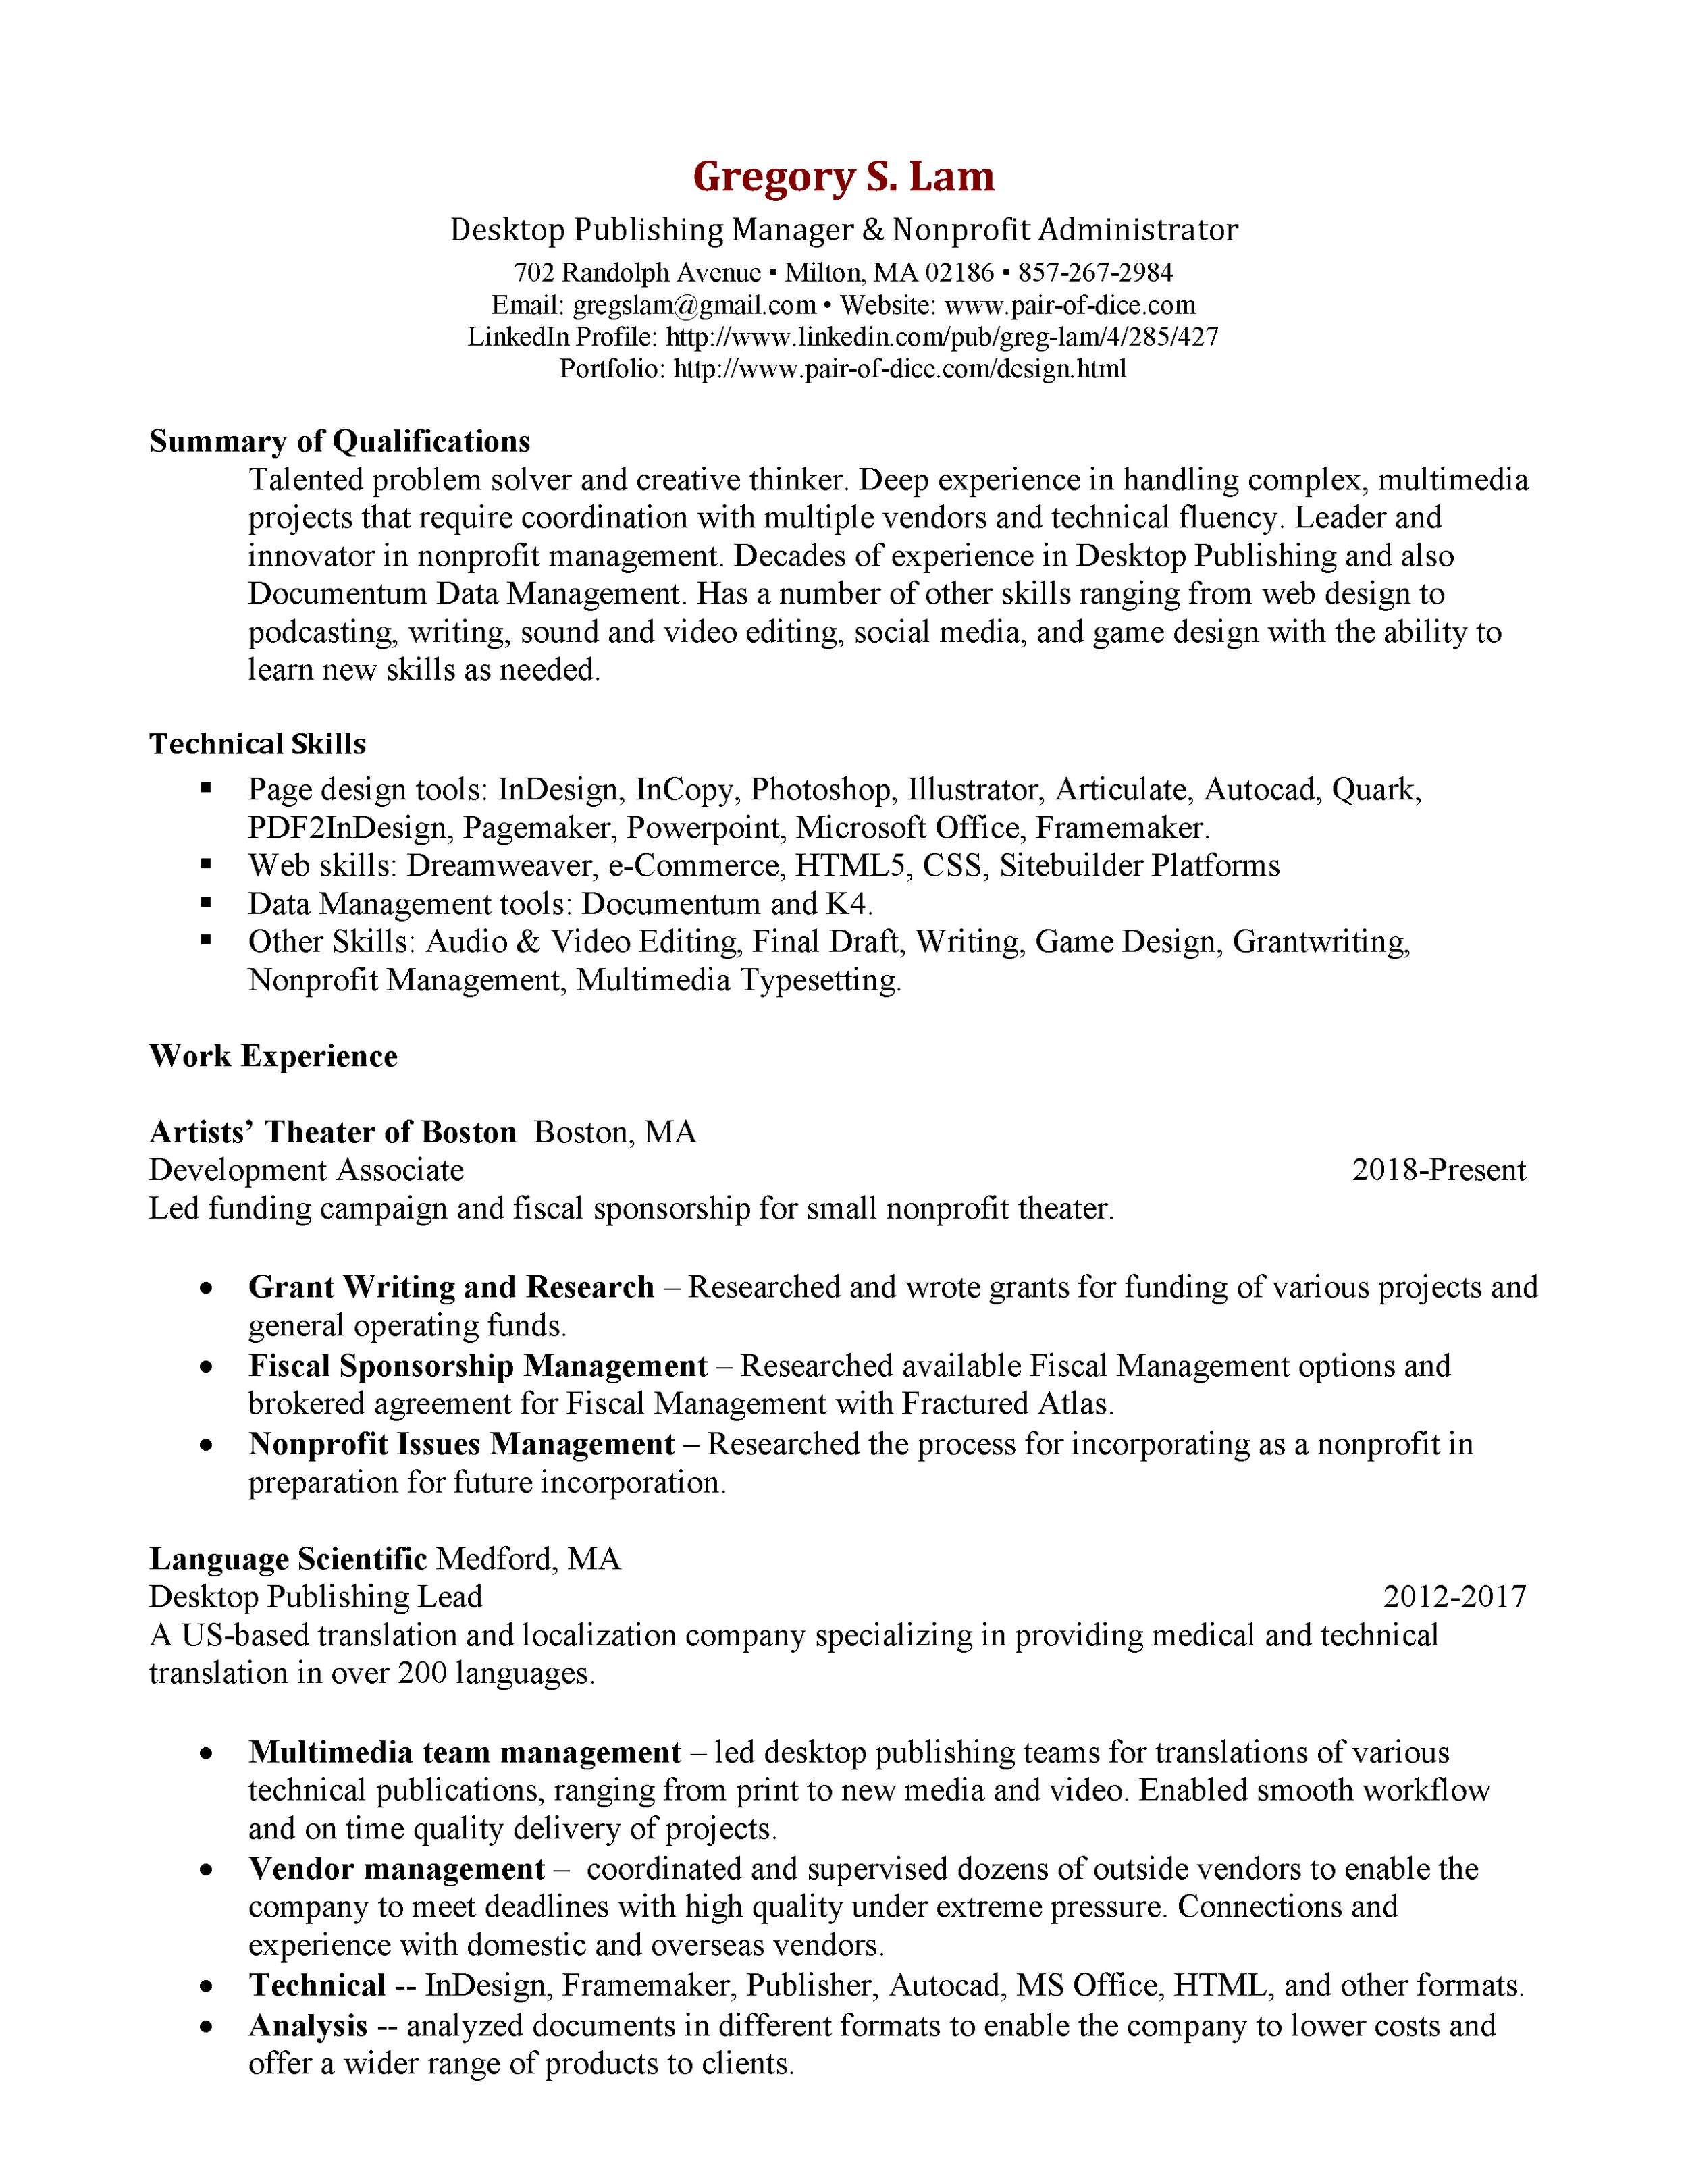 2019_Greg_Lam_Resume_Page_1.png